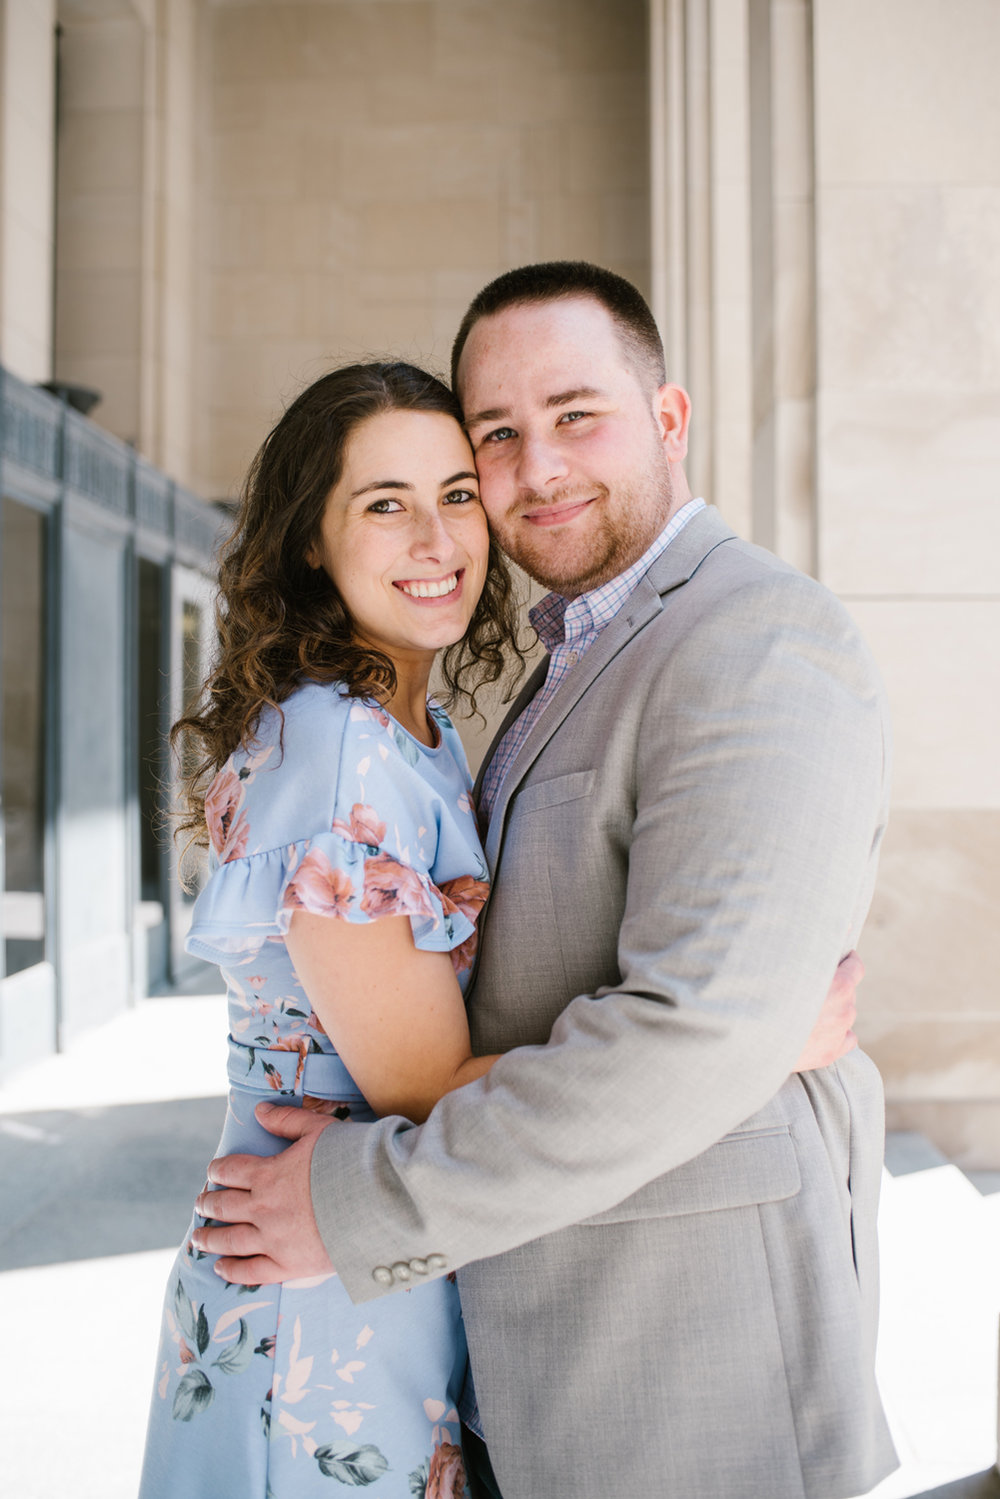 downtown-grand-rapids-michigan-engagement-photographer-spring-sydney-marie (113).jpg